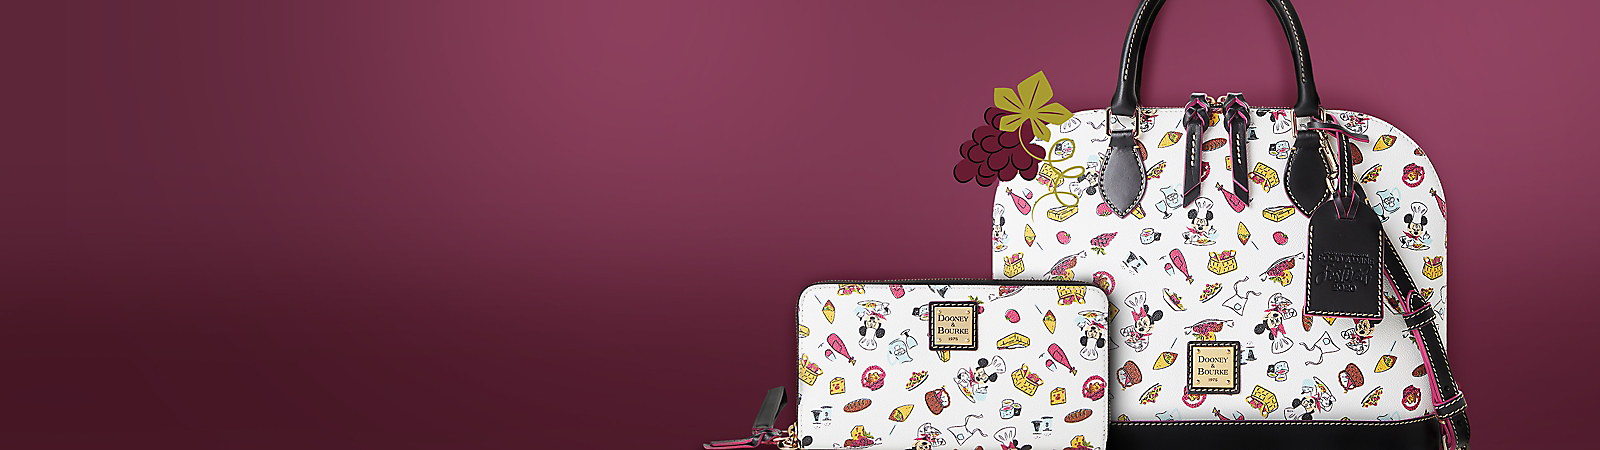 Background image of Women's Bags & Wallets